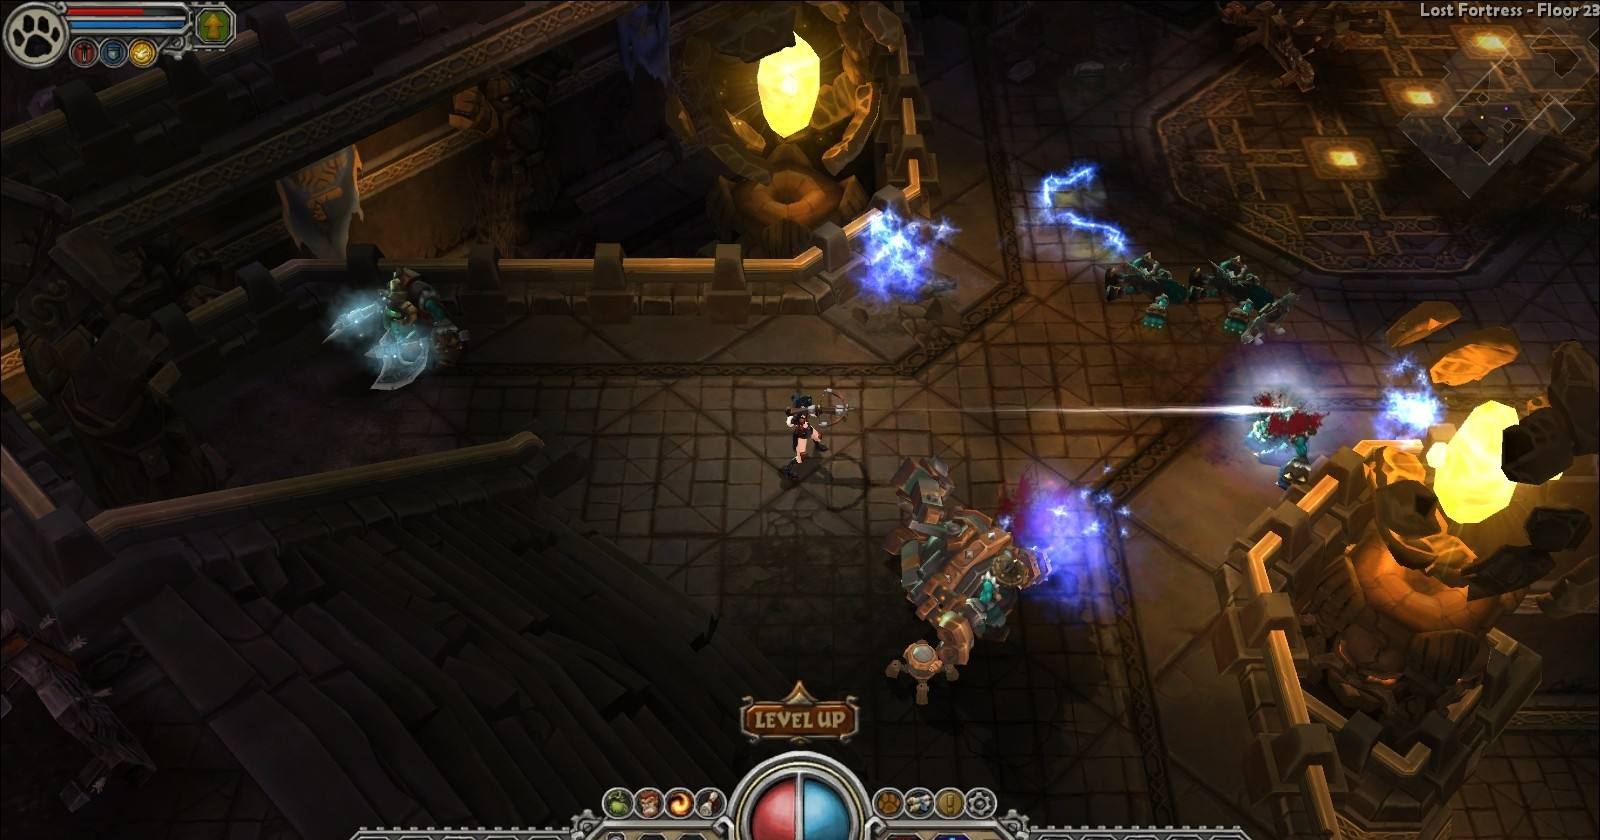 Torched torchlight editor patch